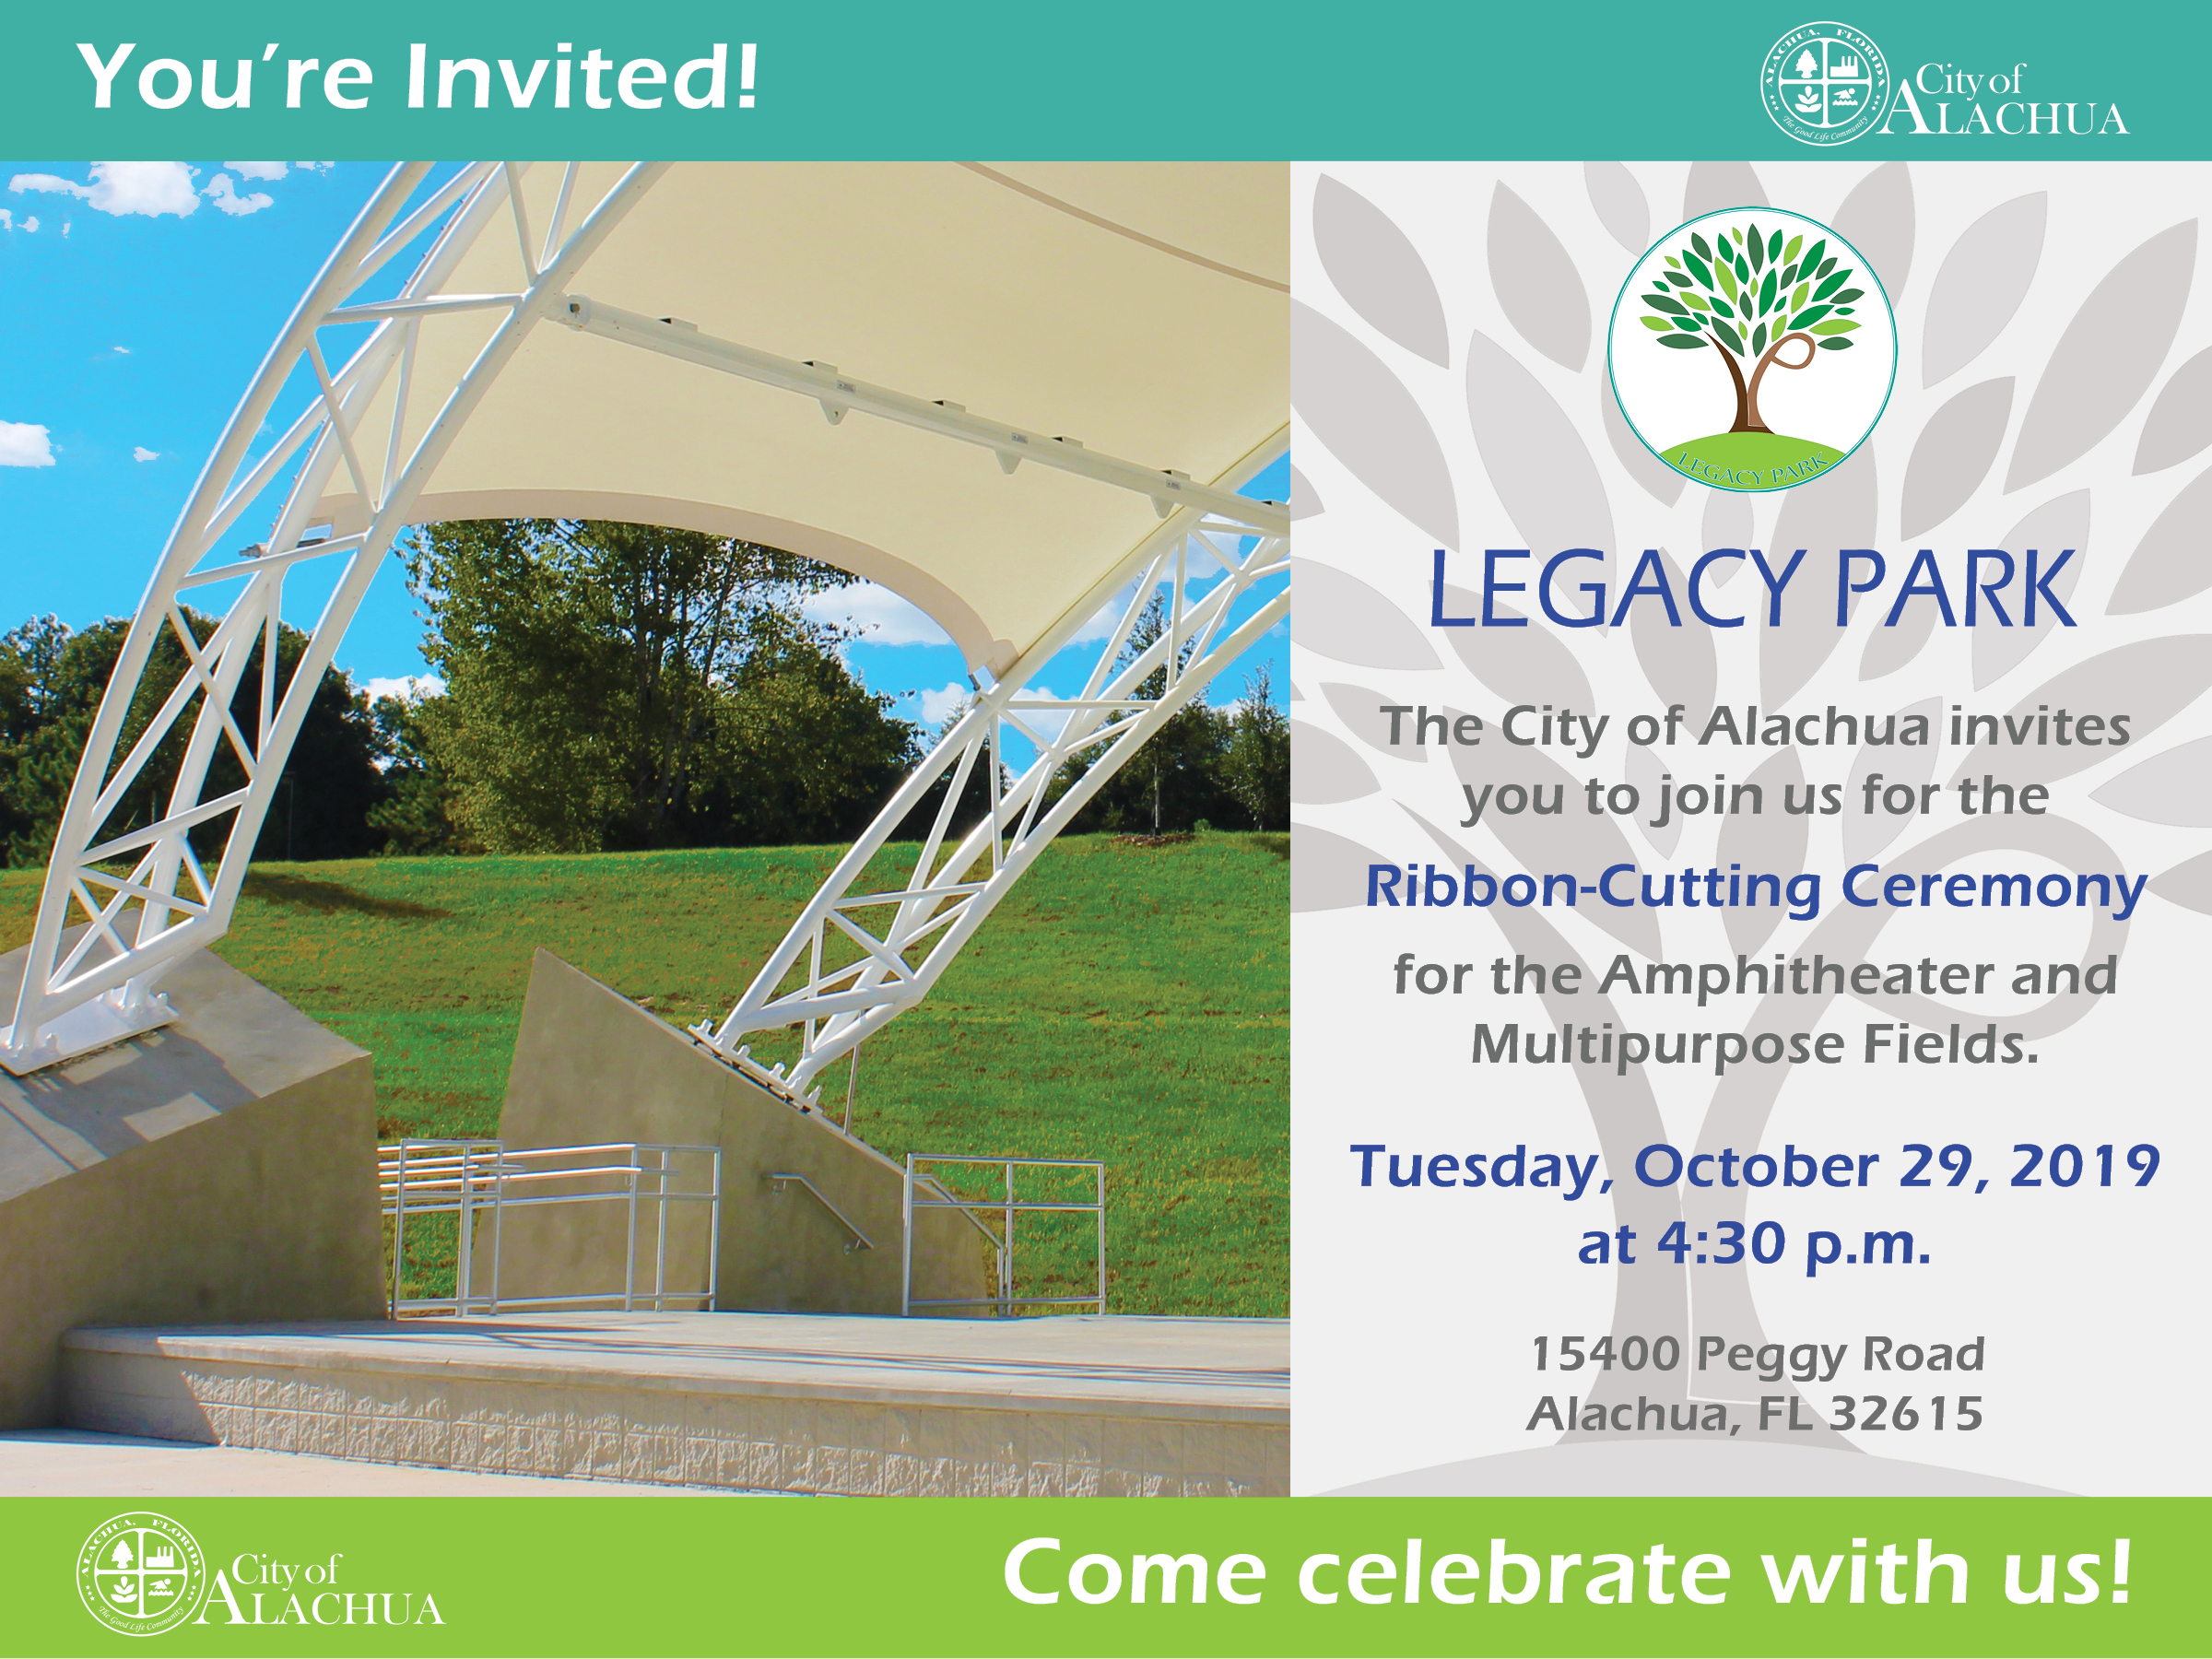 Legacy Park Amphitheater And Multipurpose Fields Ribbon Cutting Ceremony Uf Innovate